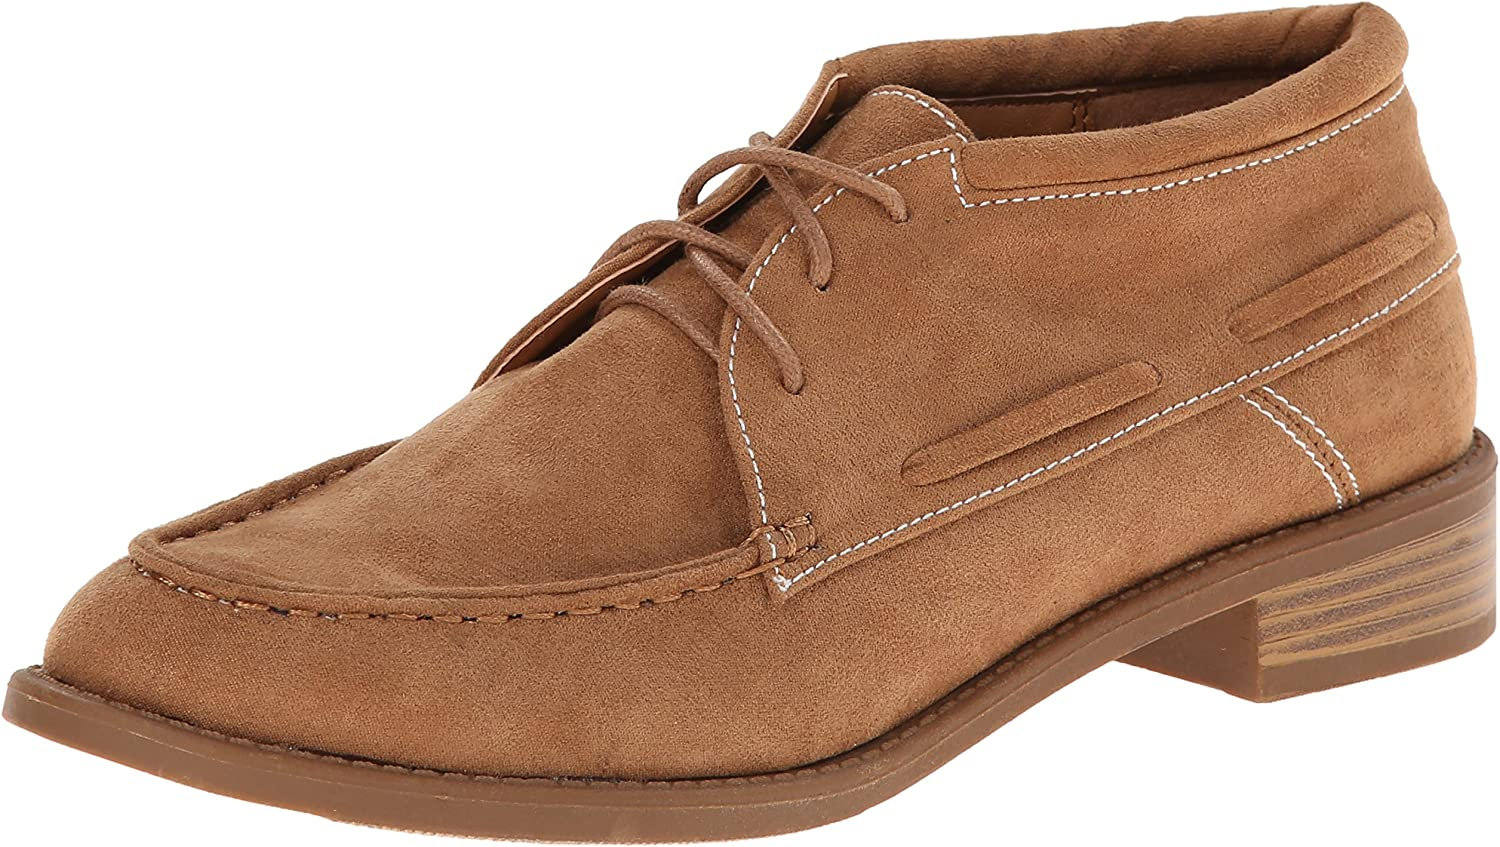 Dirty Laundry by Chinese Laundry Women's Valiant Suede Oxford